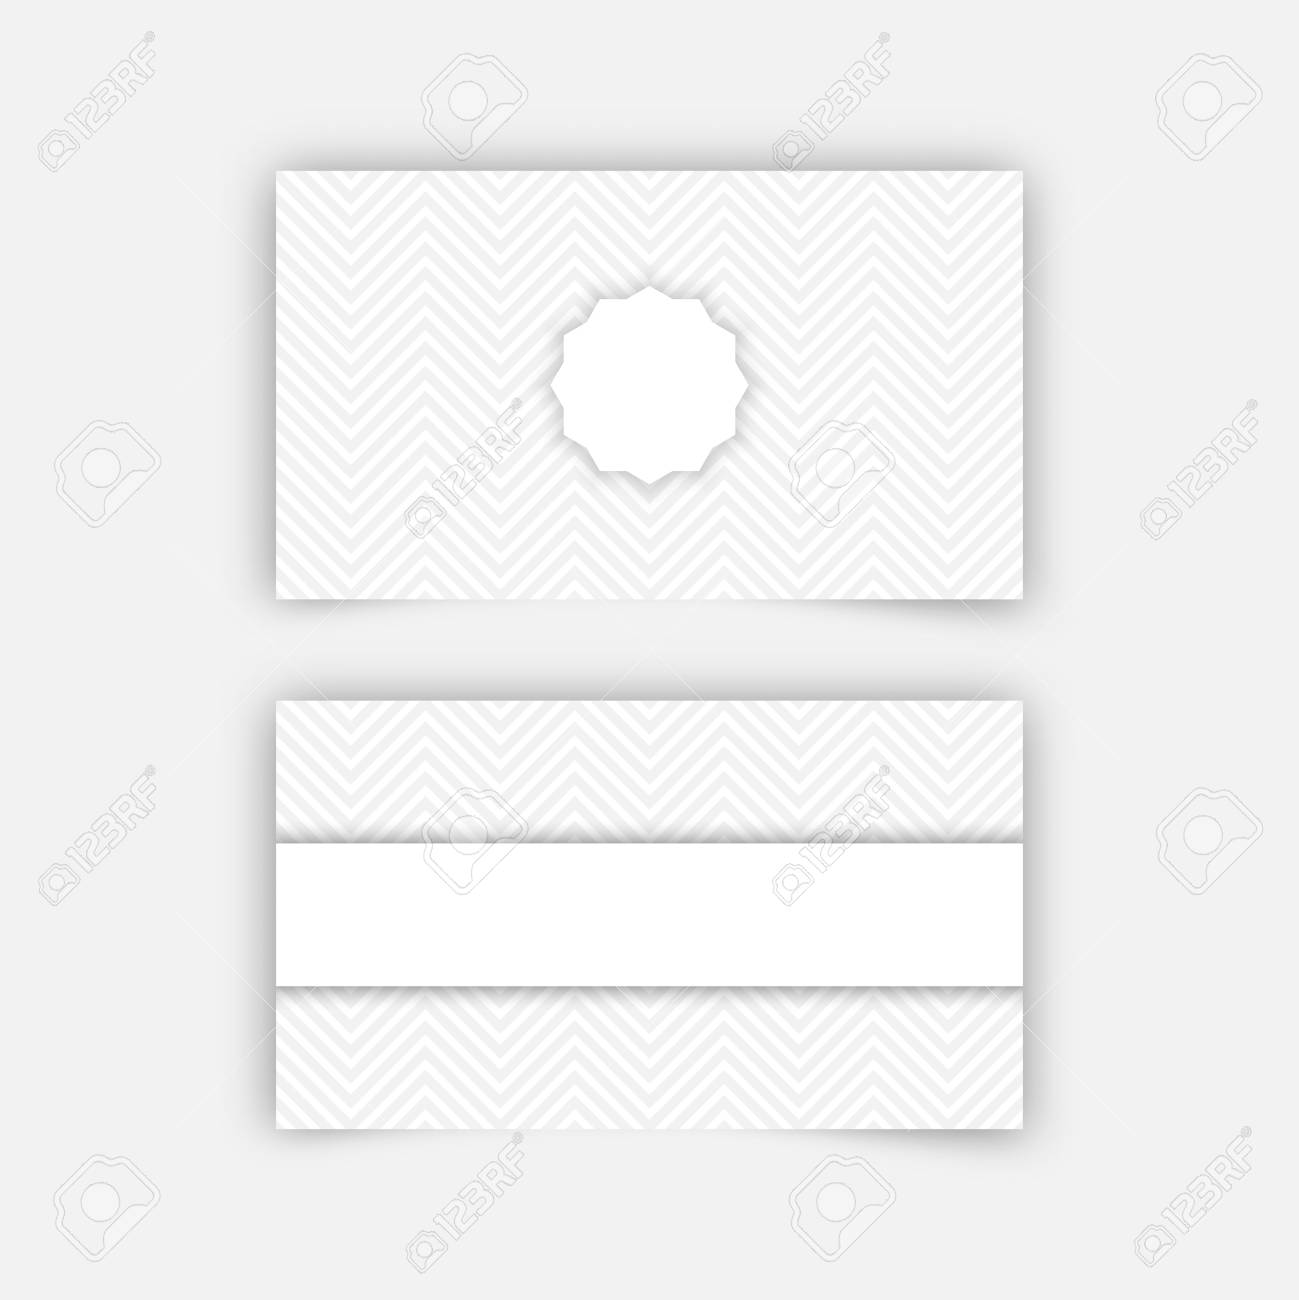 Business card blank template with textured background from zigzag business card blank template with textured background from zigzag strips minimal elegant vector design stock flashek Gallery